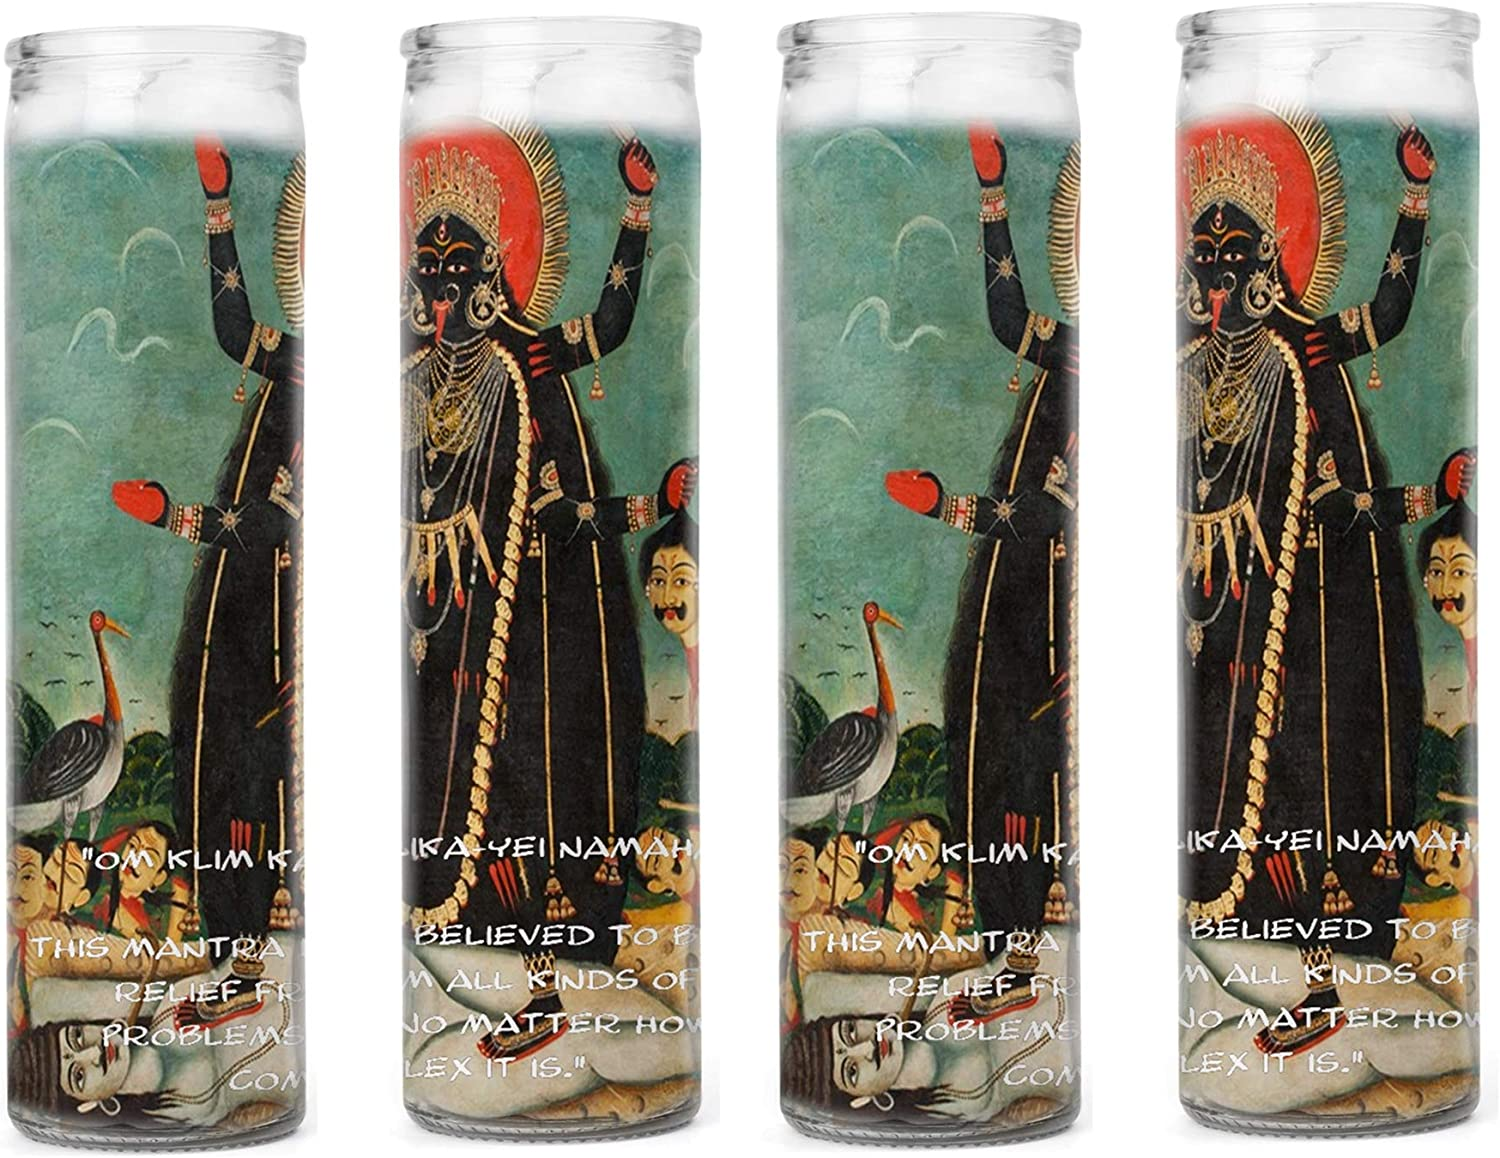 Kali Kaushika Max 68% OFF The Sheath Black Goddess Time OFFer Deat and of Doomsday